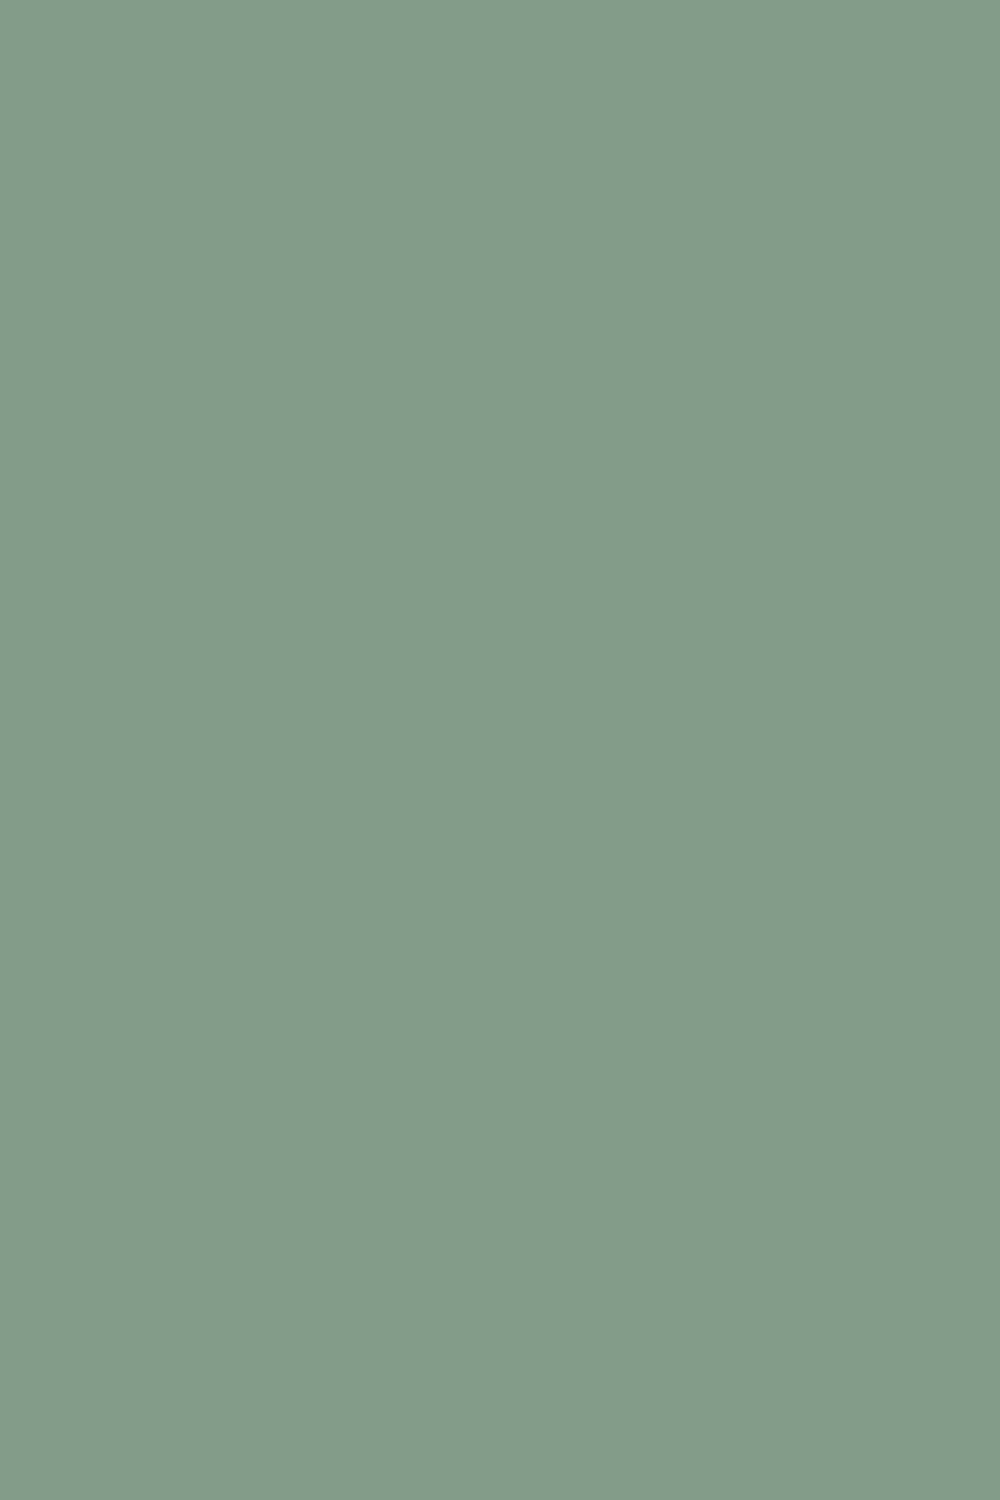 Farrow & Ball - Chappell Green - love this color